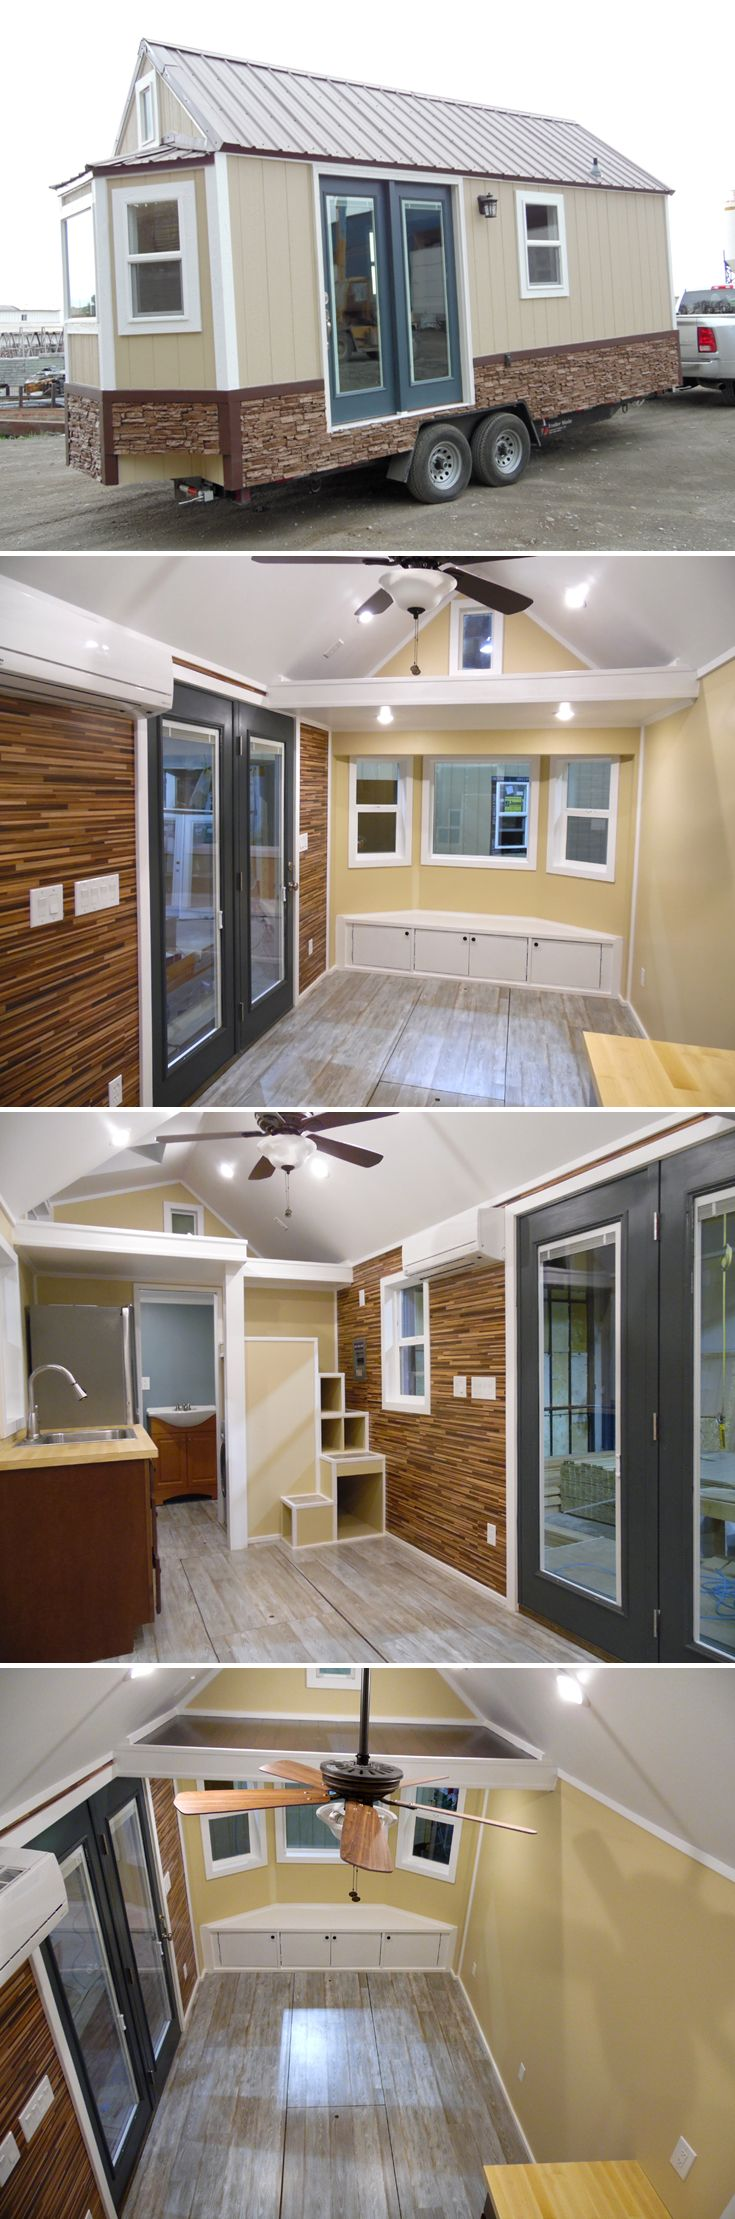 A 20' tiny house with bay window and storage under the built-in couch. Along one interior wall is laminate siding that adds a bit of character to the home.